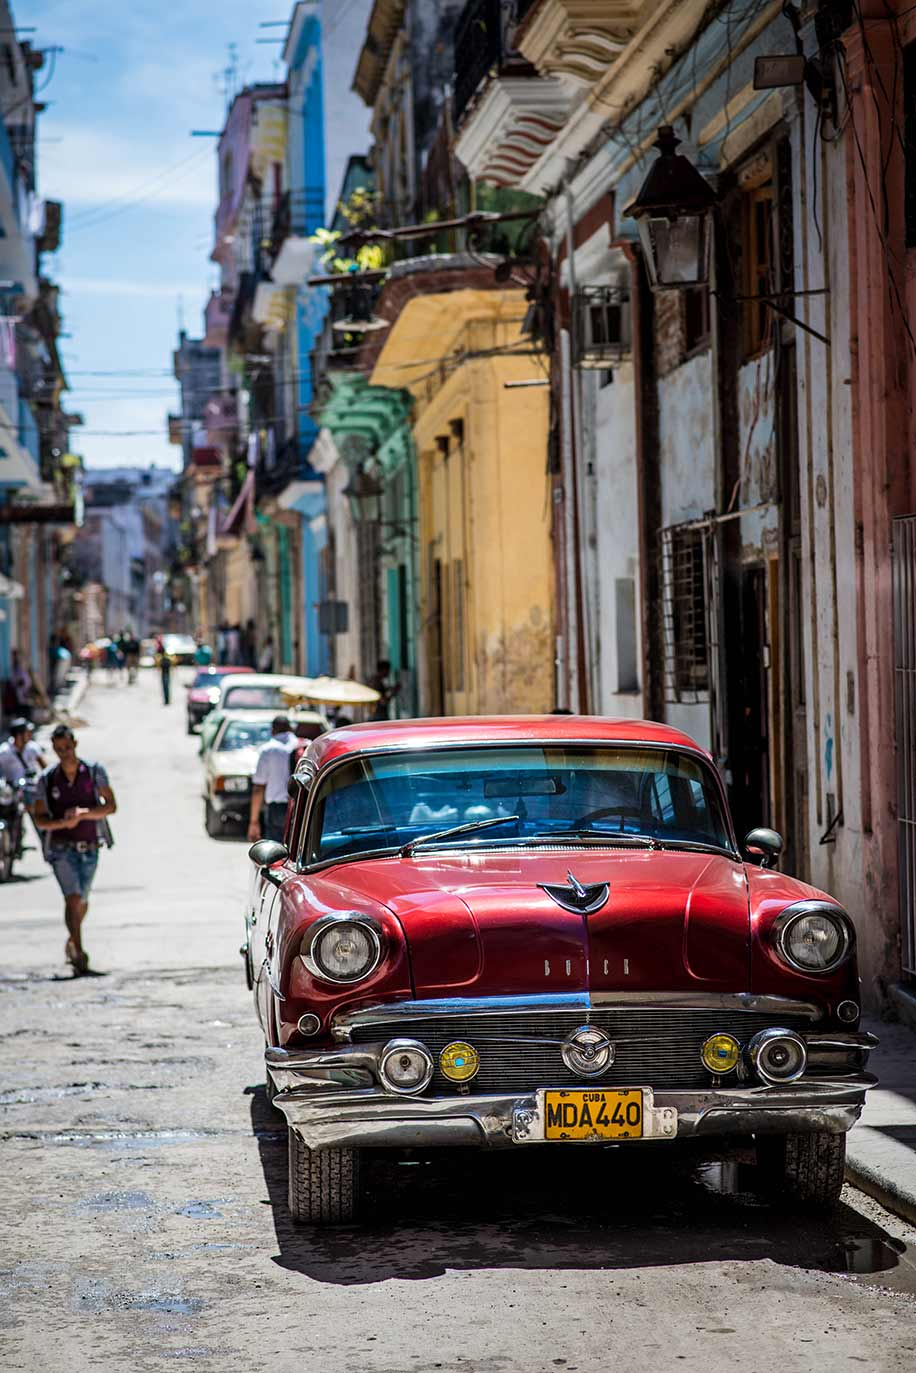 Cuba with the Nikon D800